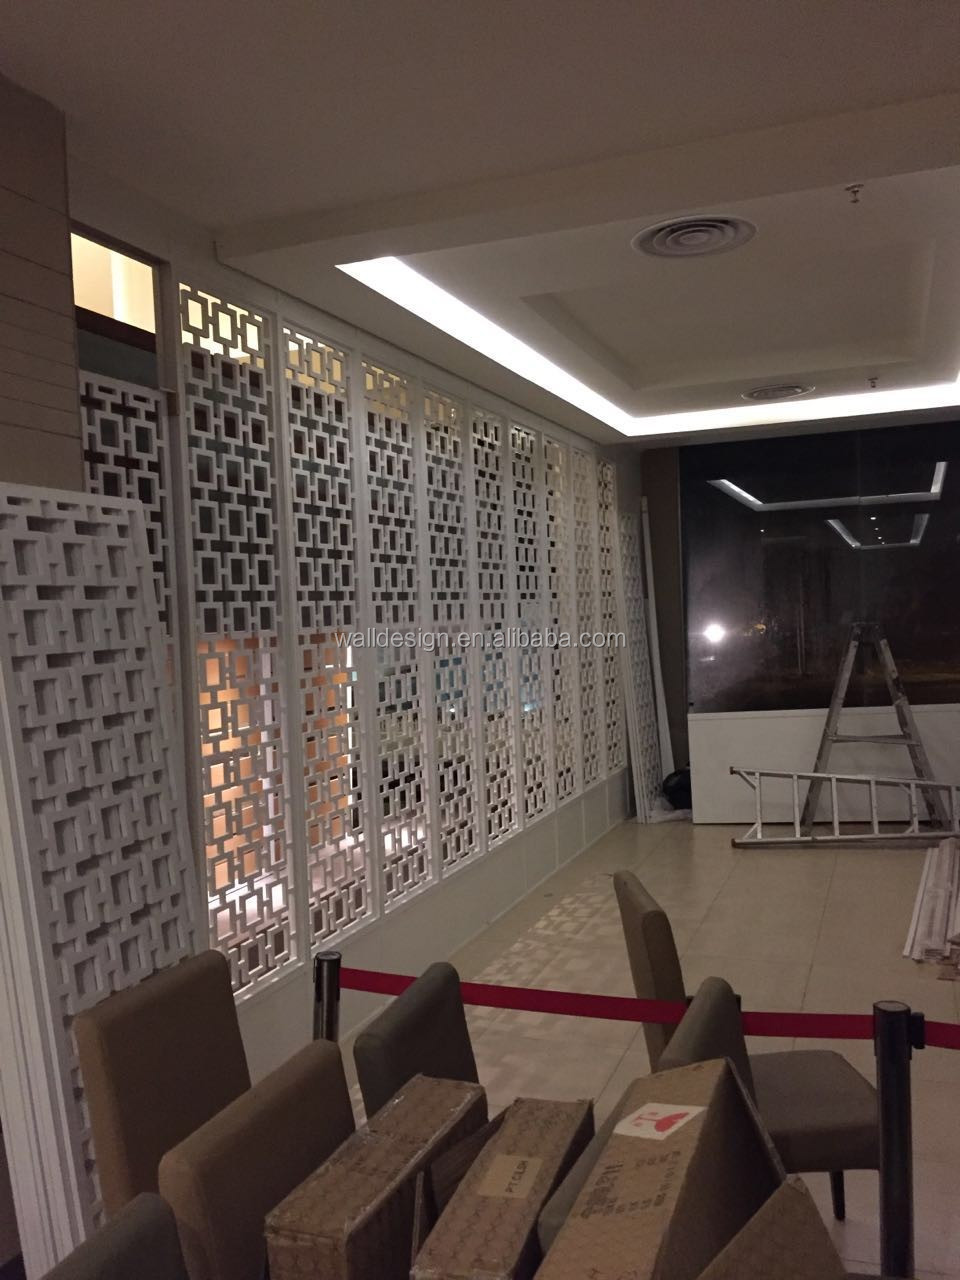 room home residential to walls own renovation screenflex with used portable your regard dividers